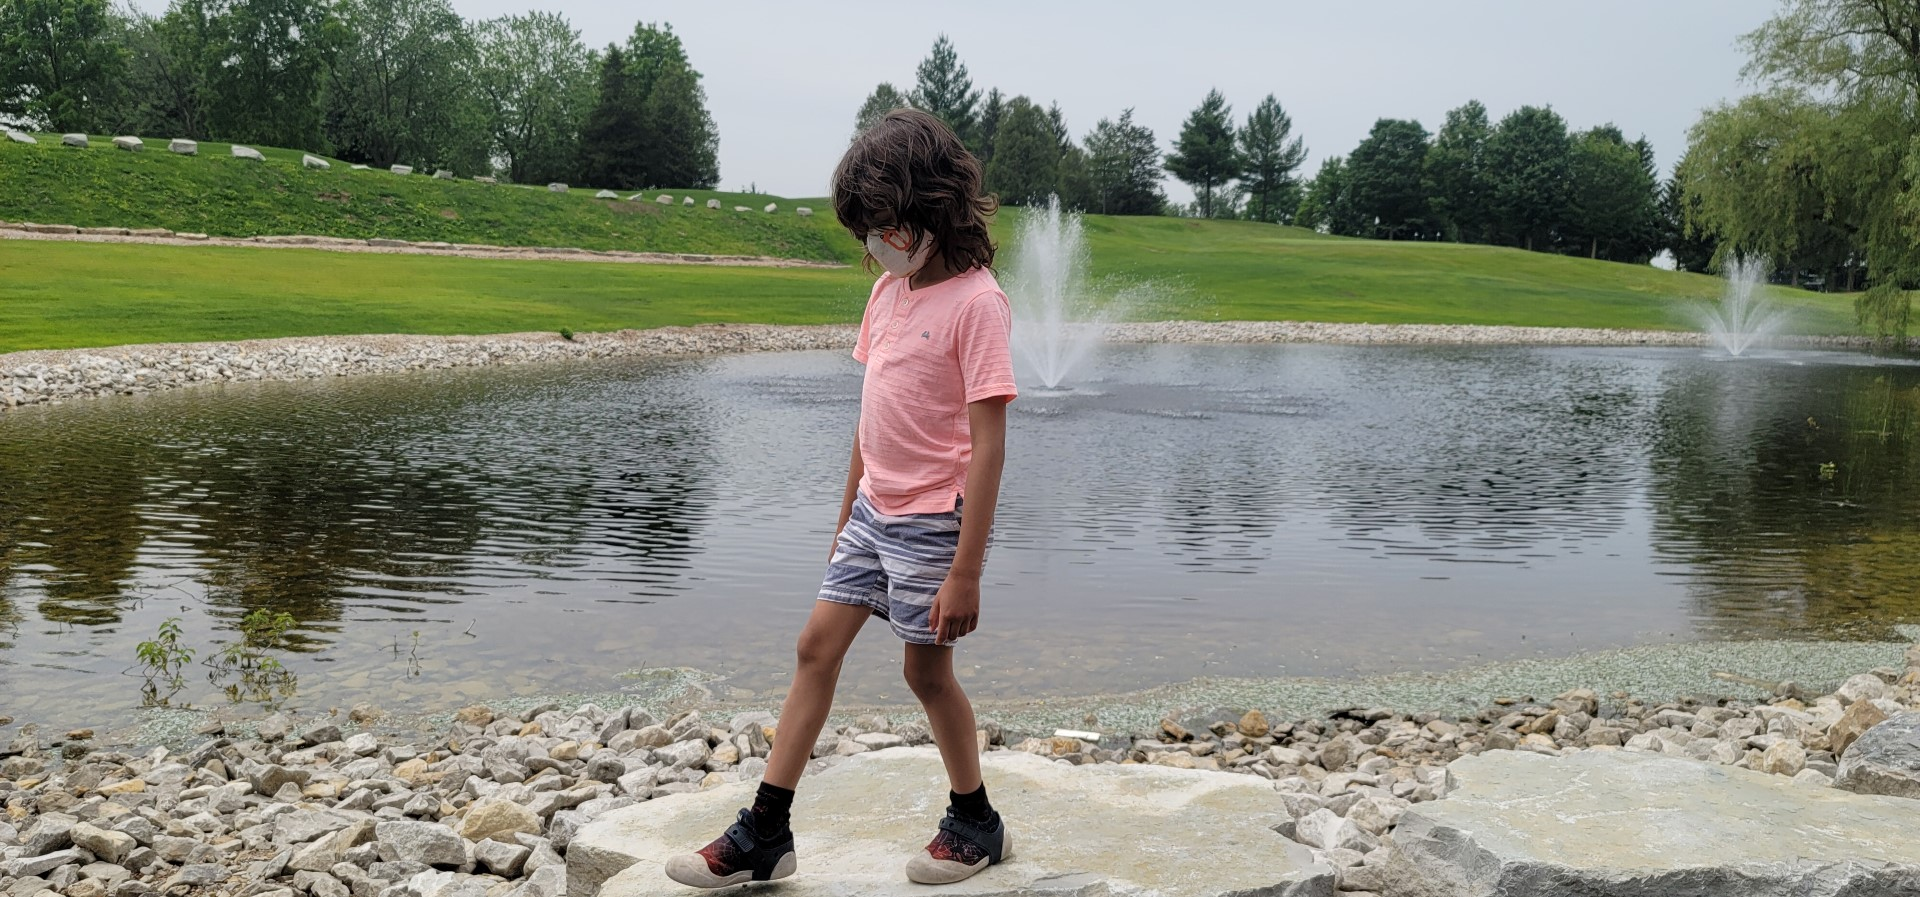 boy wearing pink shirt and shorts walking by pond